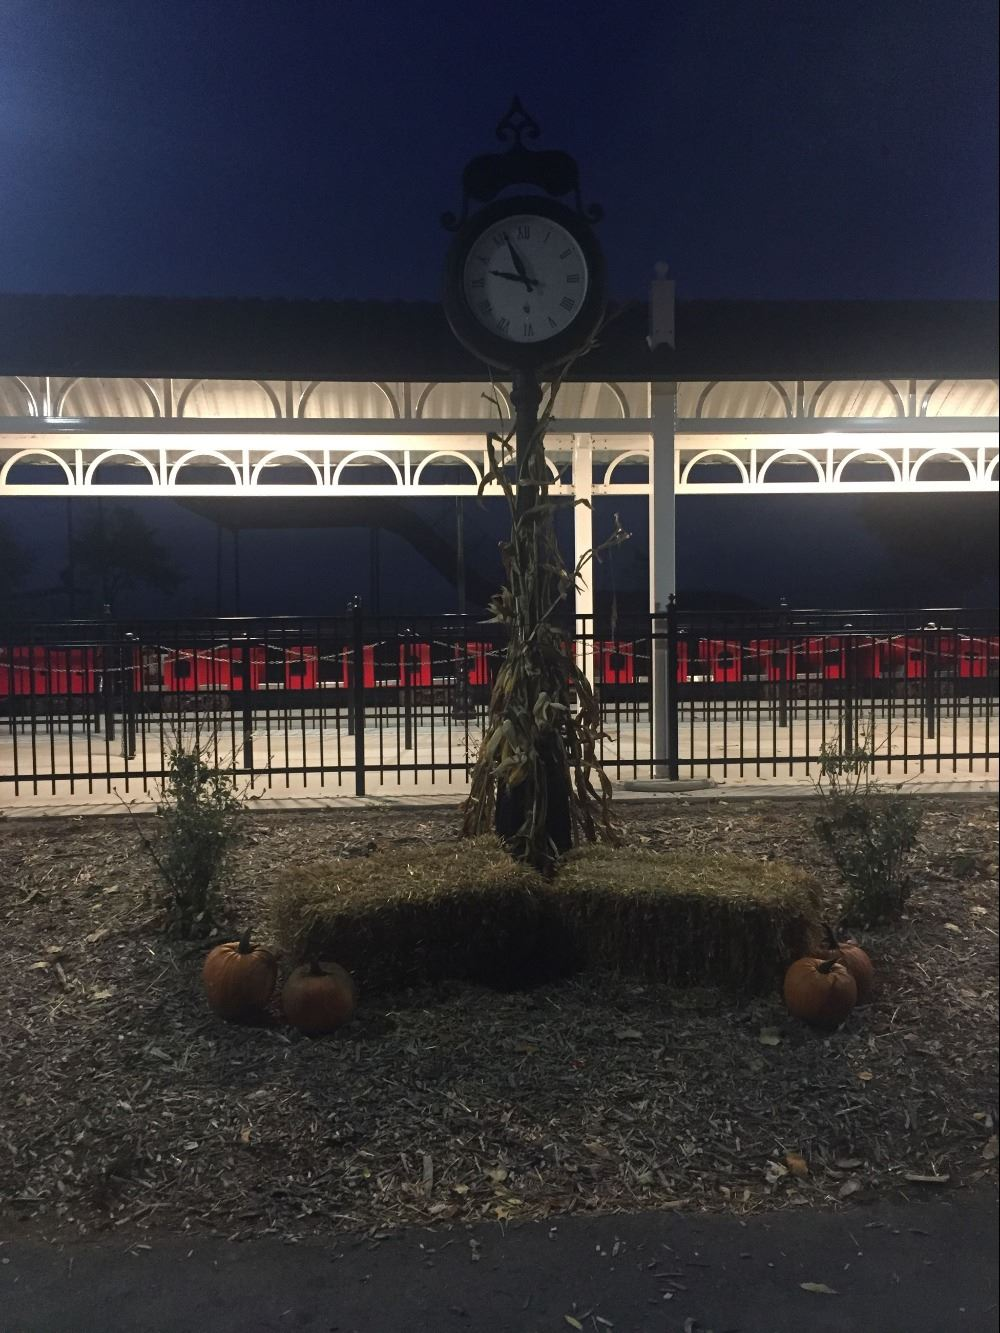 Train clock with fall decorations